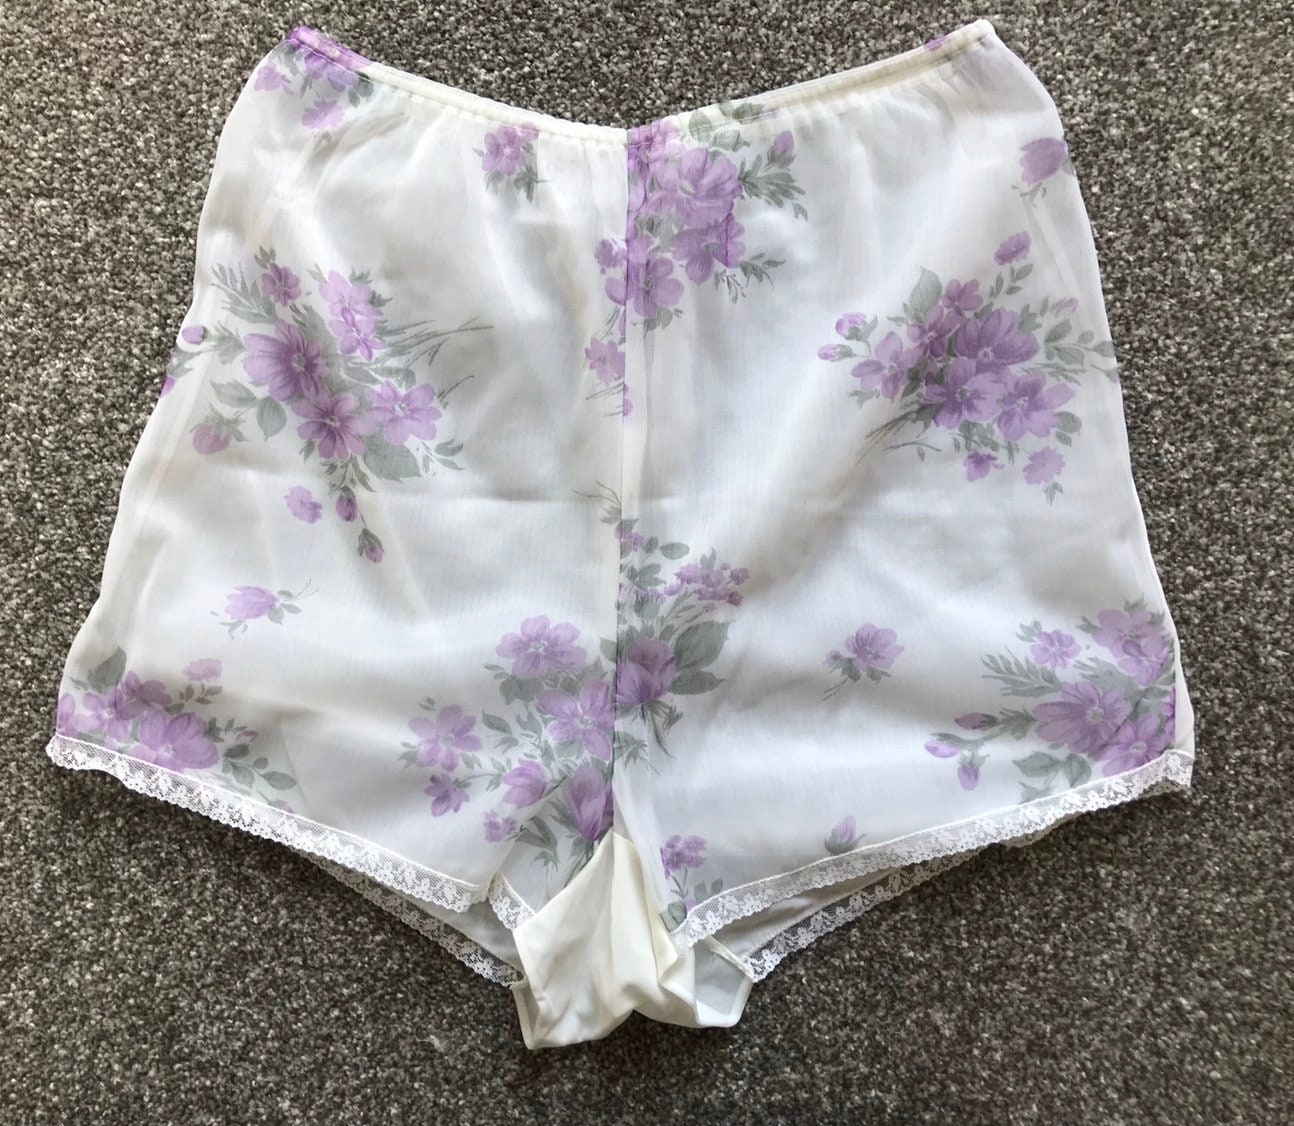 1c3e3e17f5b Vintage 1950s Cami Knickers Frilly Panties French Lace Pinup ...